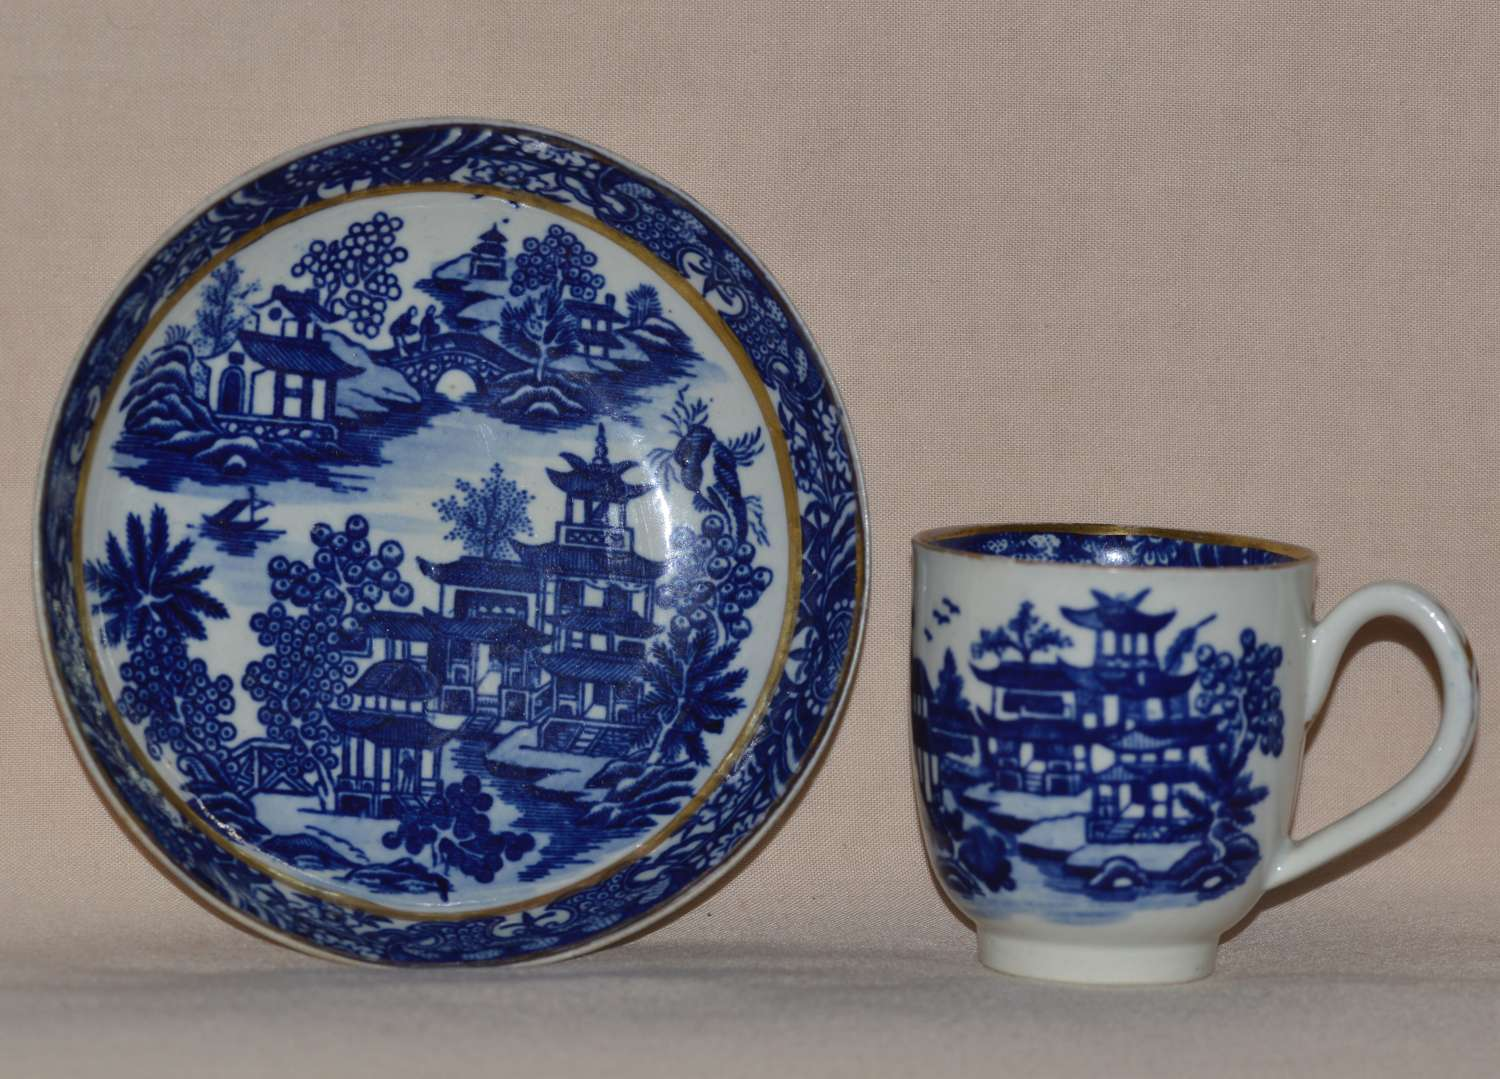 Worcester Porcelain Coffee Cup and Saucer 'Bandstand' Pattern 1780-90